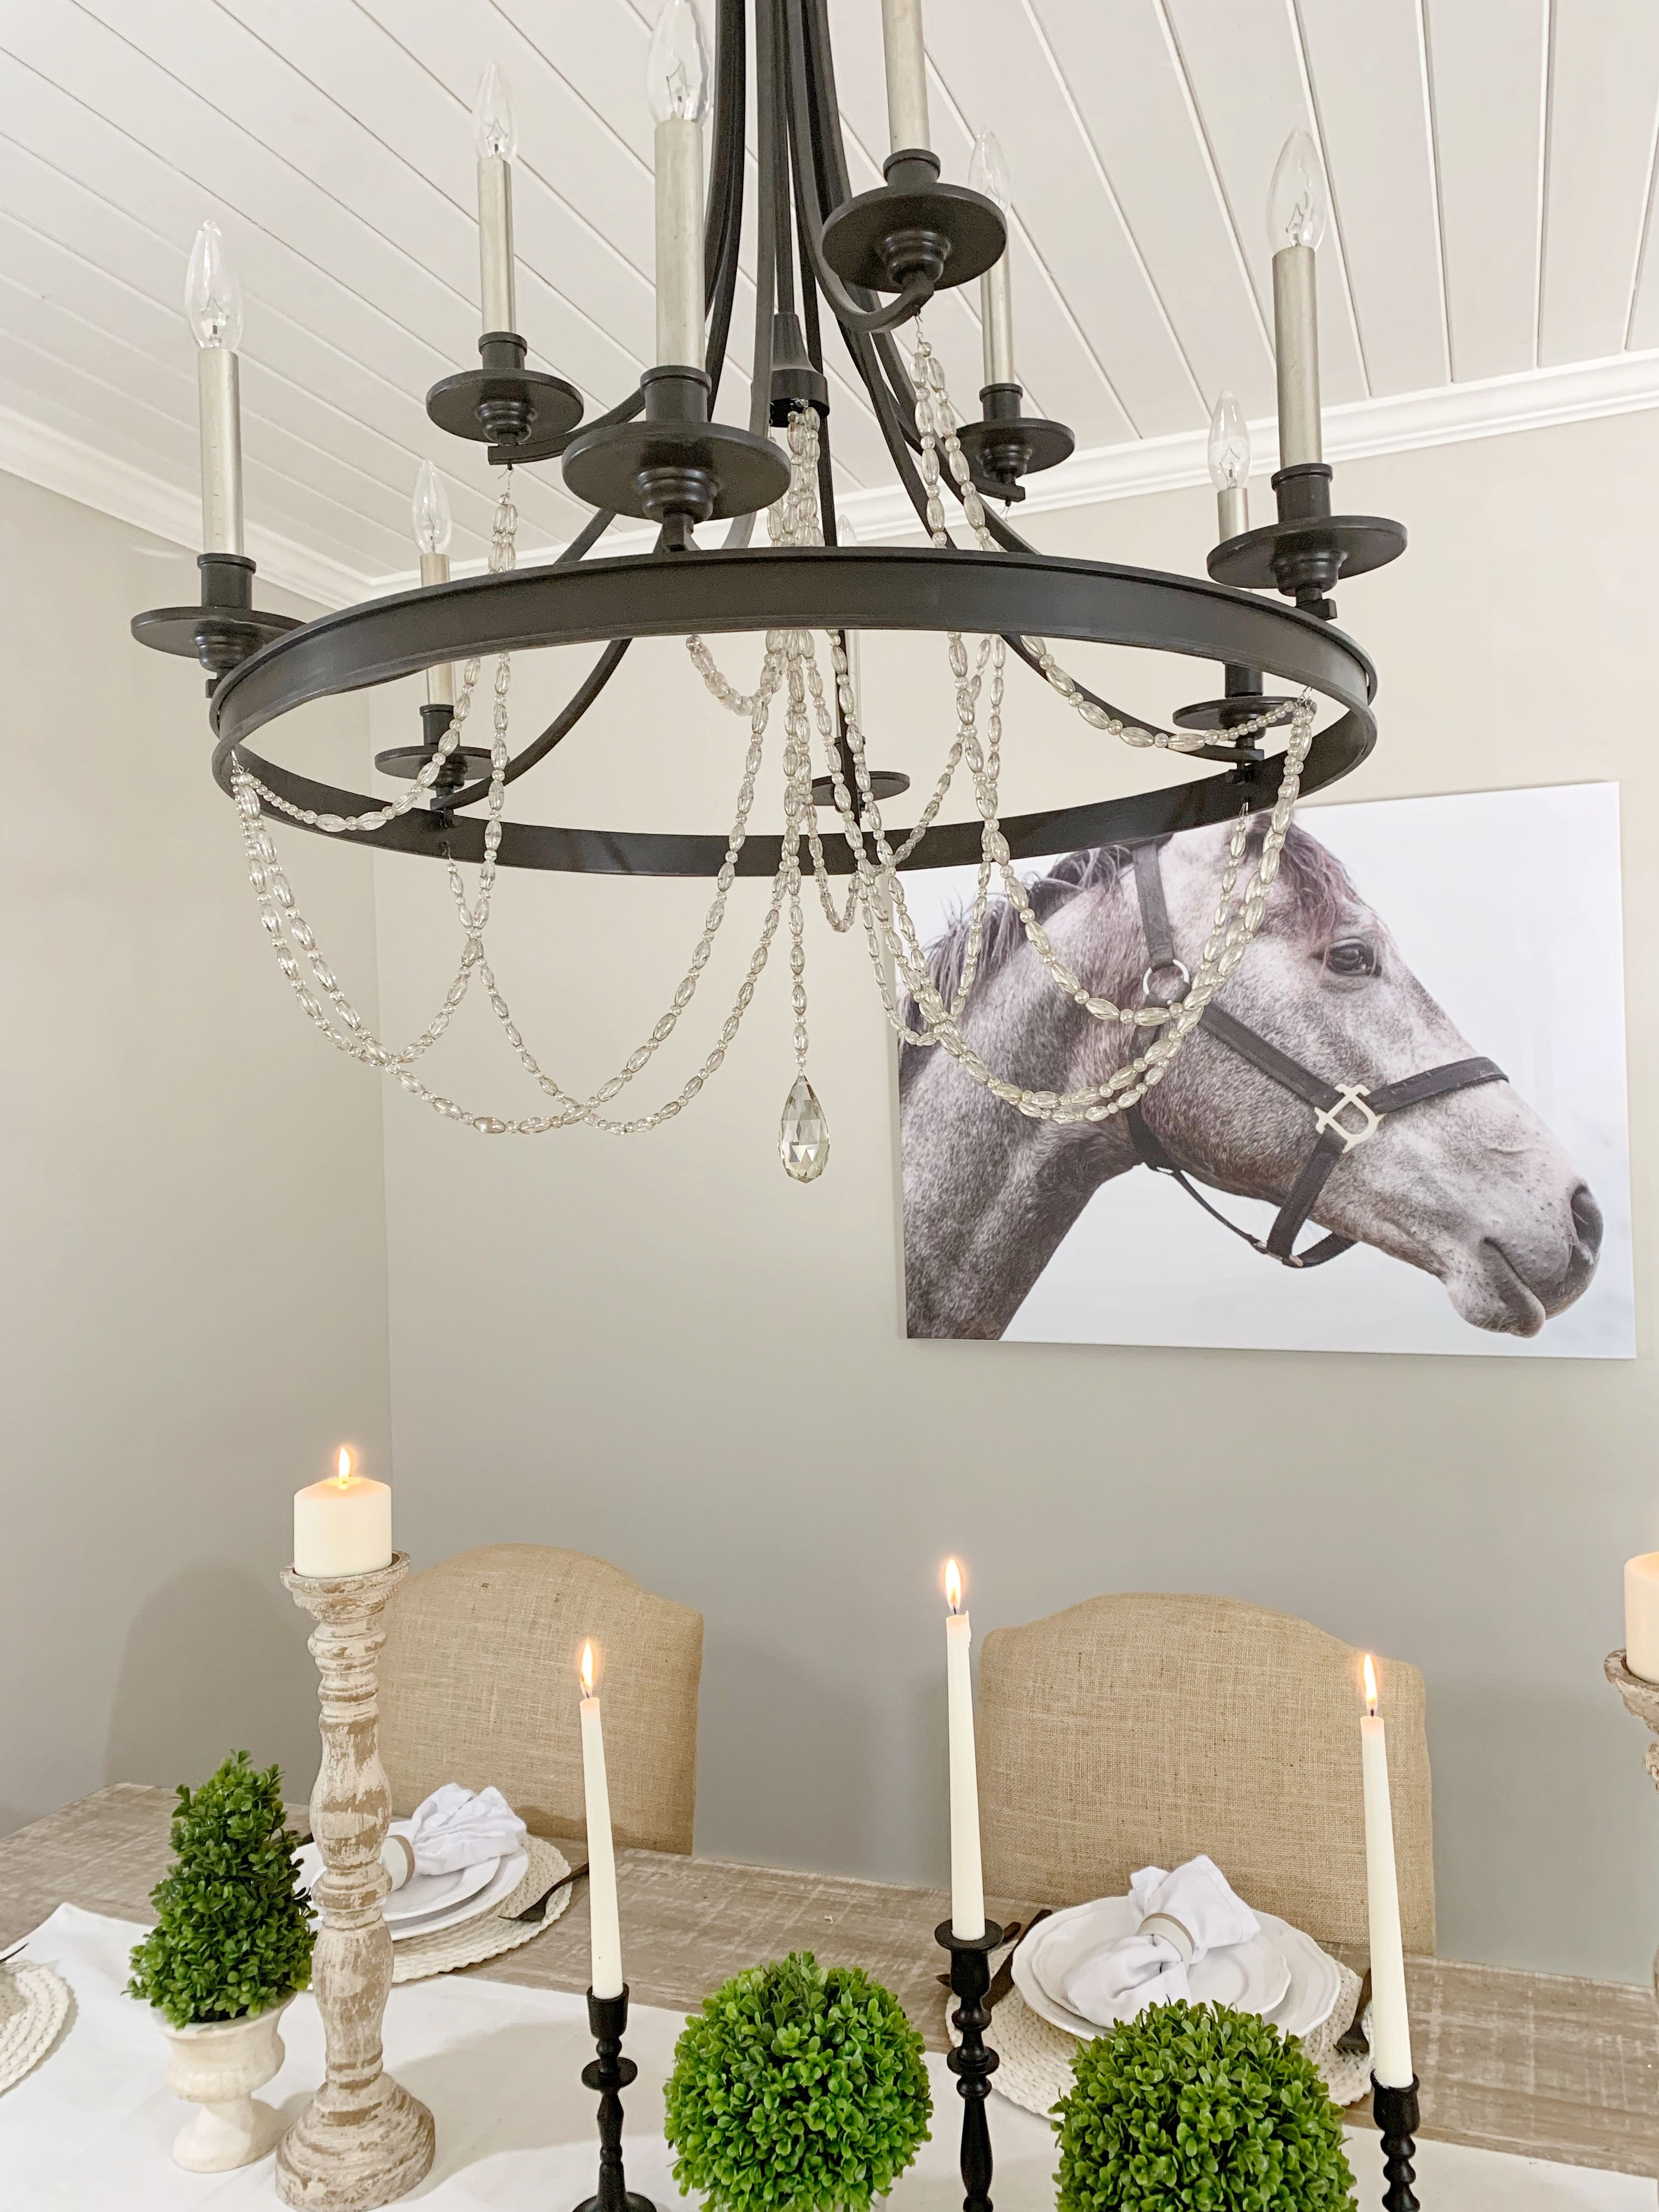 Casual Luxe Chandelier In Farmhouse Dining Room Design With Candelabras Painting Dining Room Lighting Dining Room Chandelier Dining Room Design